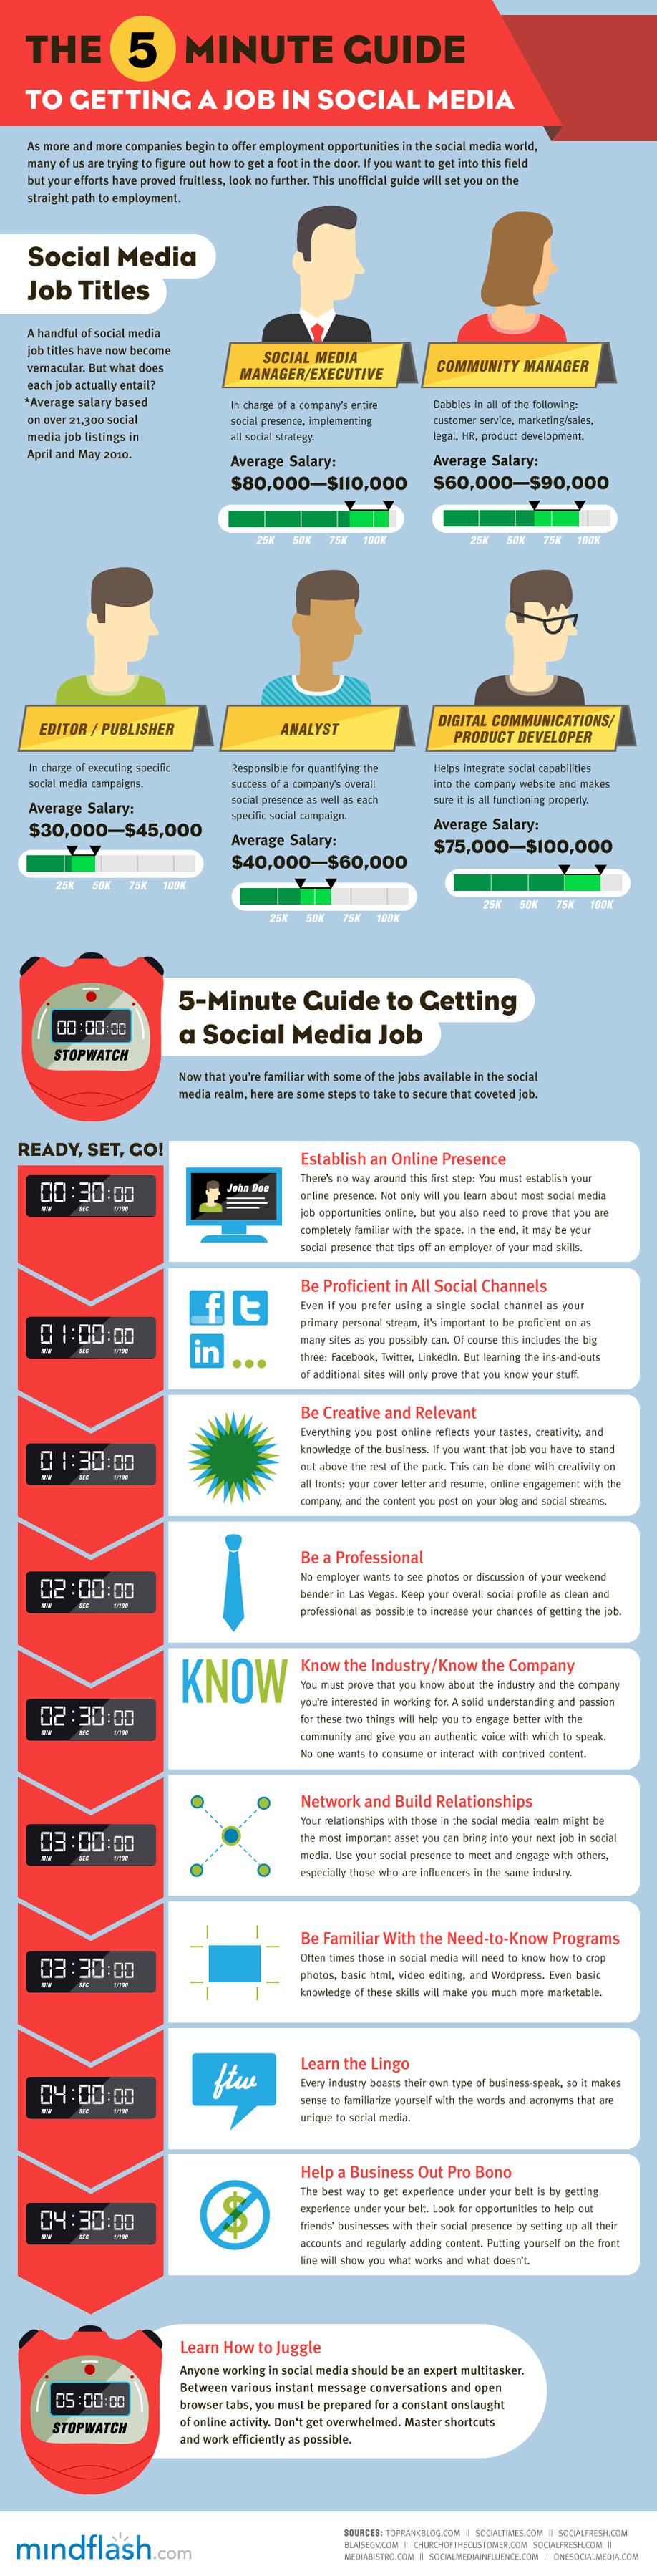 NEW Infographic: How To Get A Job In Social Media In 5 Minutes